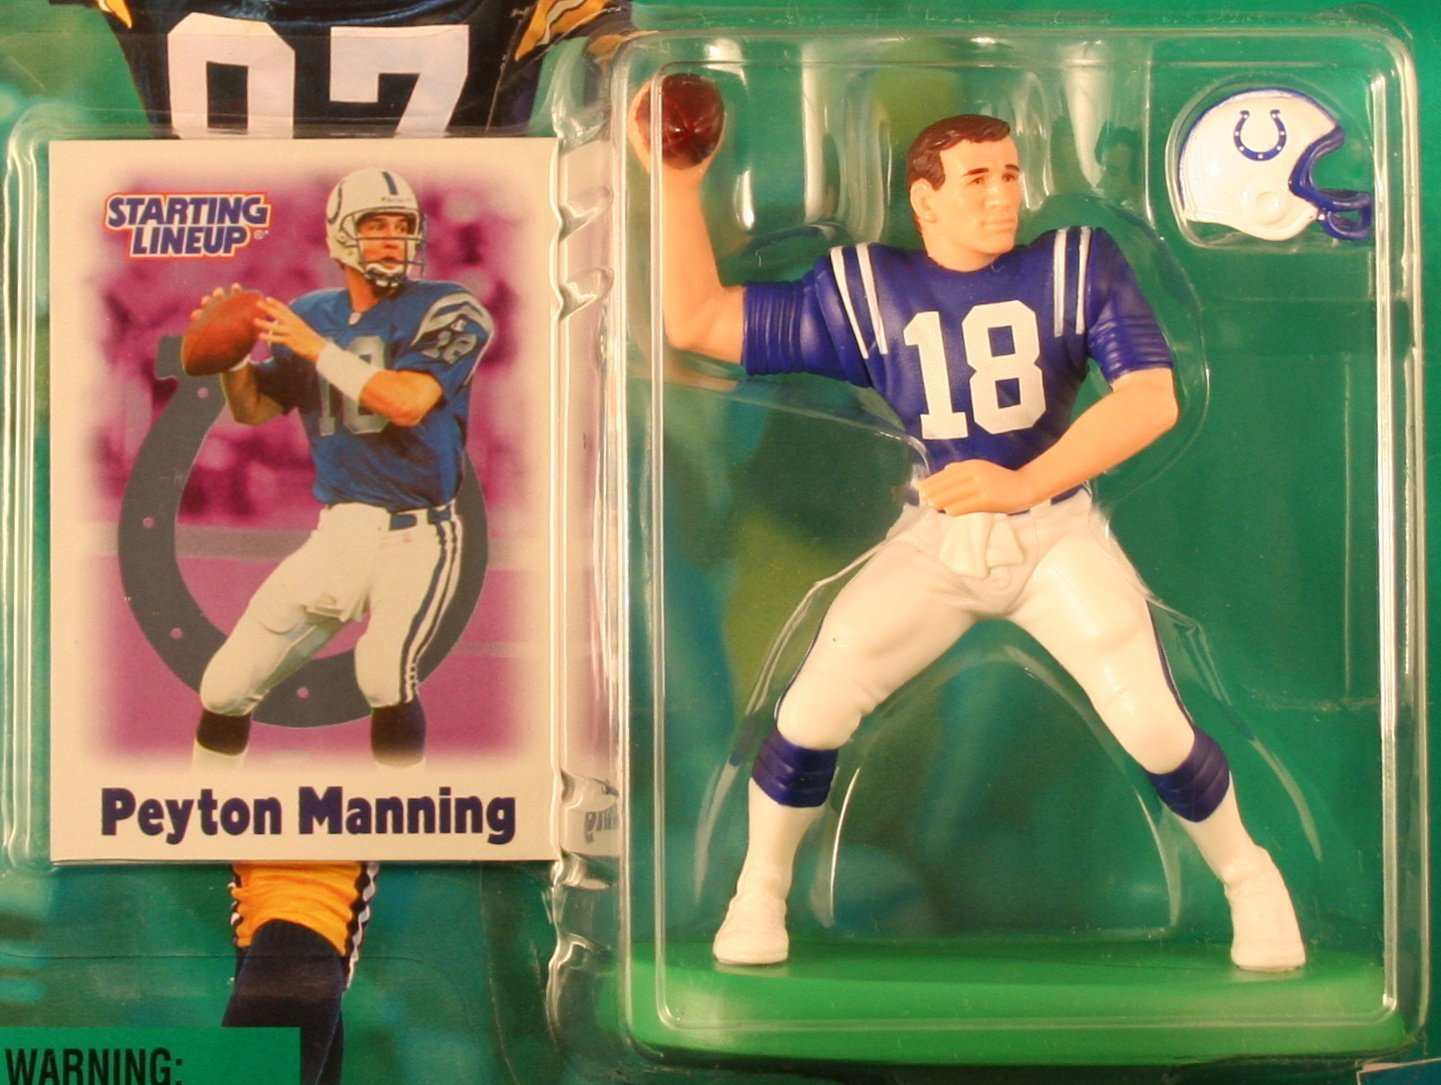 PEYTON MANNING / INDIANAPOLIS COLTS 2000-2001 NFL Starting Lineup Action Figure & Exclusive NFL Collector Trading Card